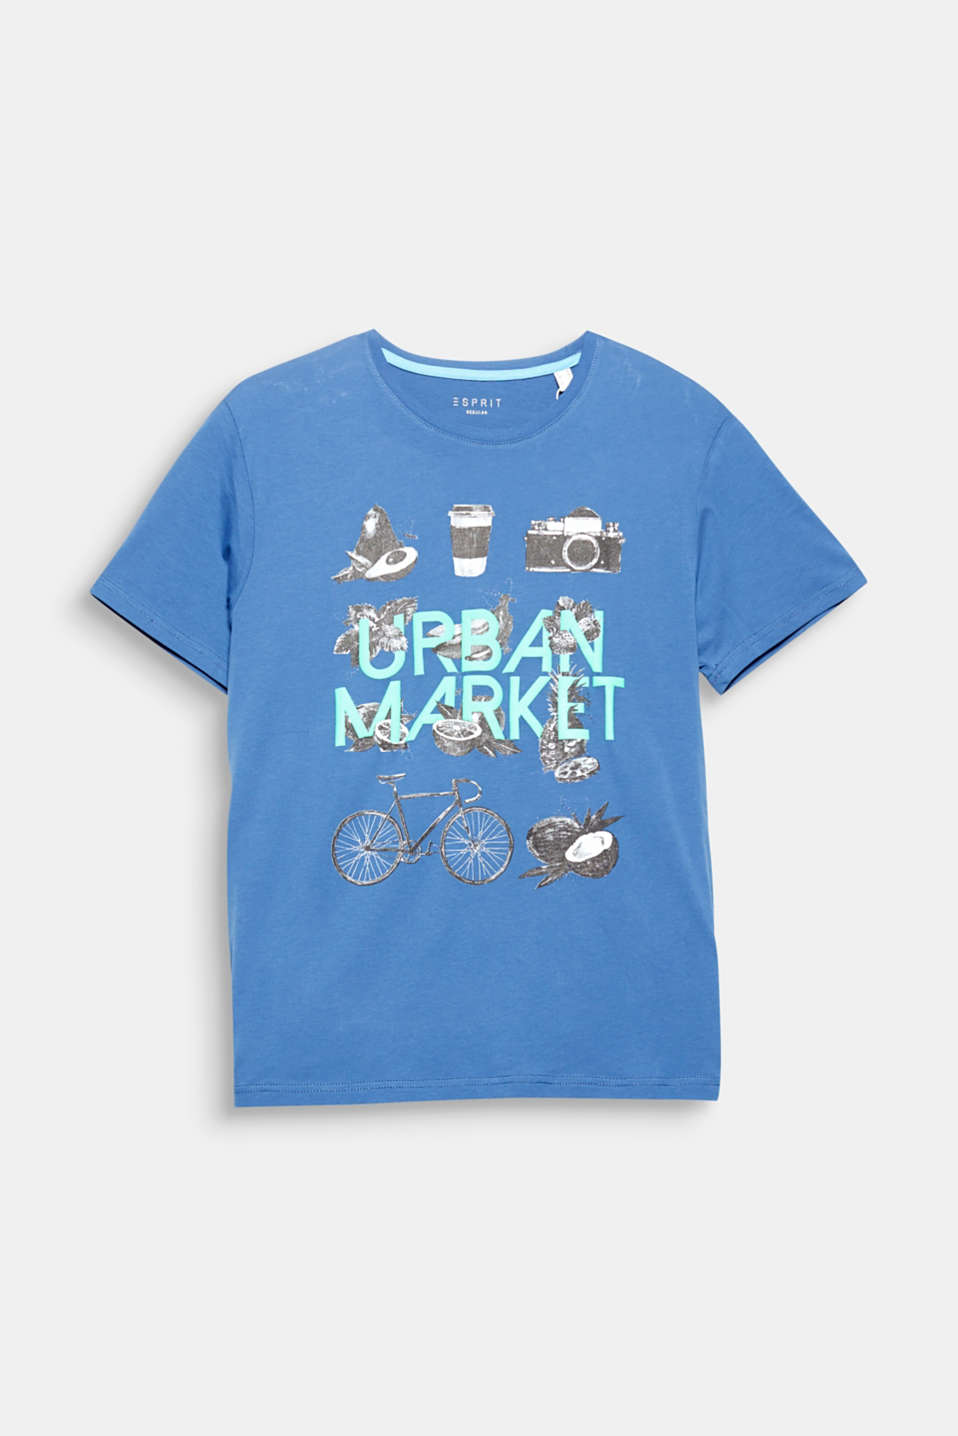 Urban market! Cool symbol prints and a vivid statement make this pure cotton T-shirt a statement in itself.